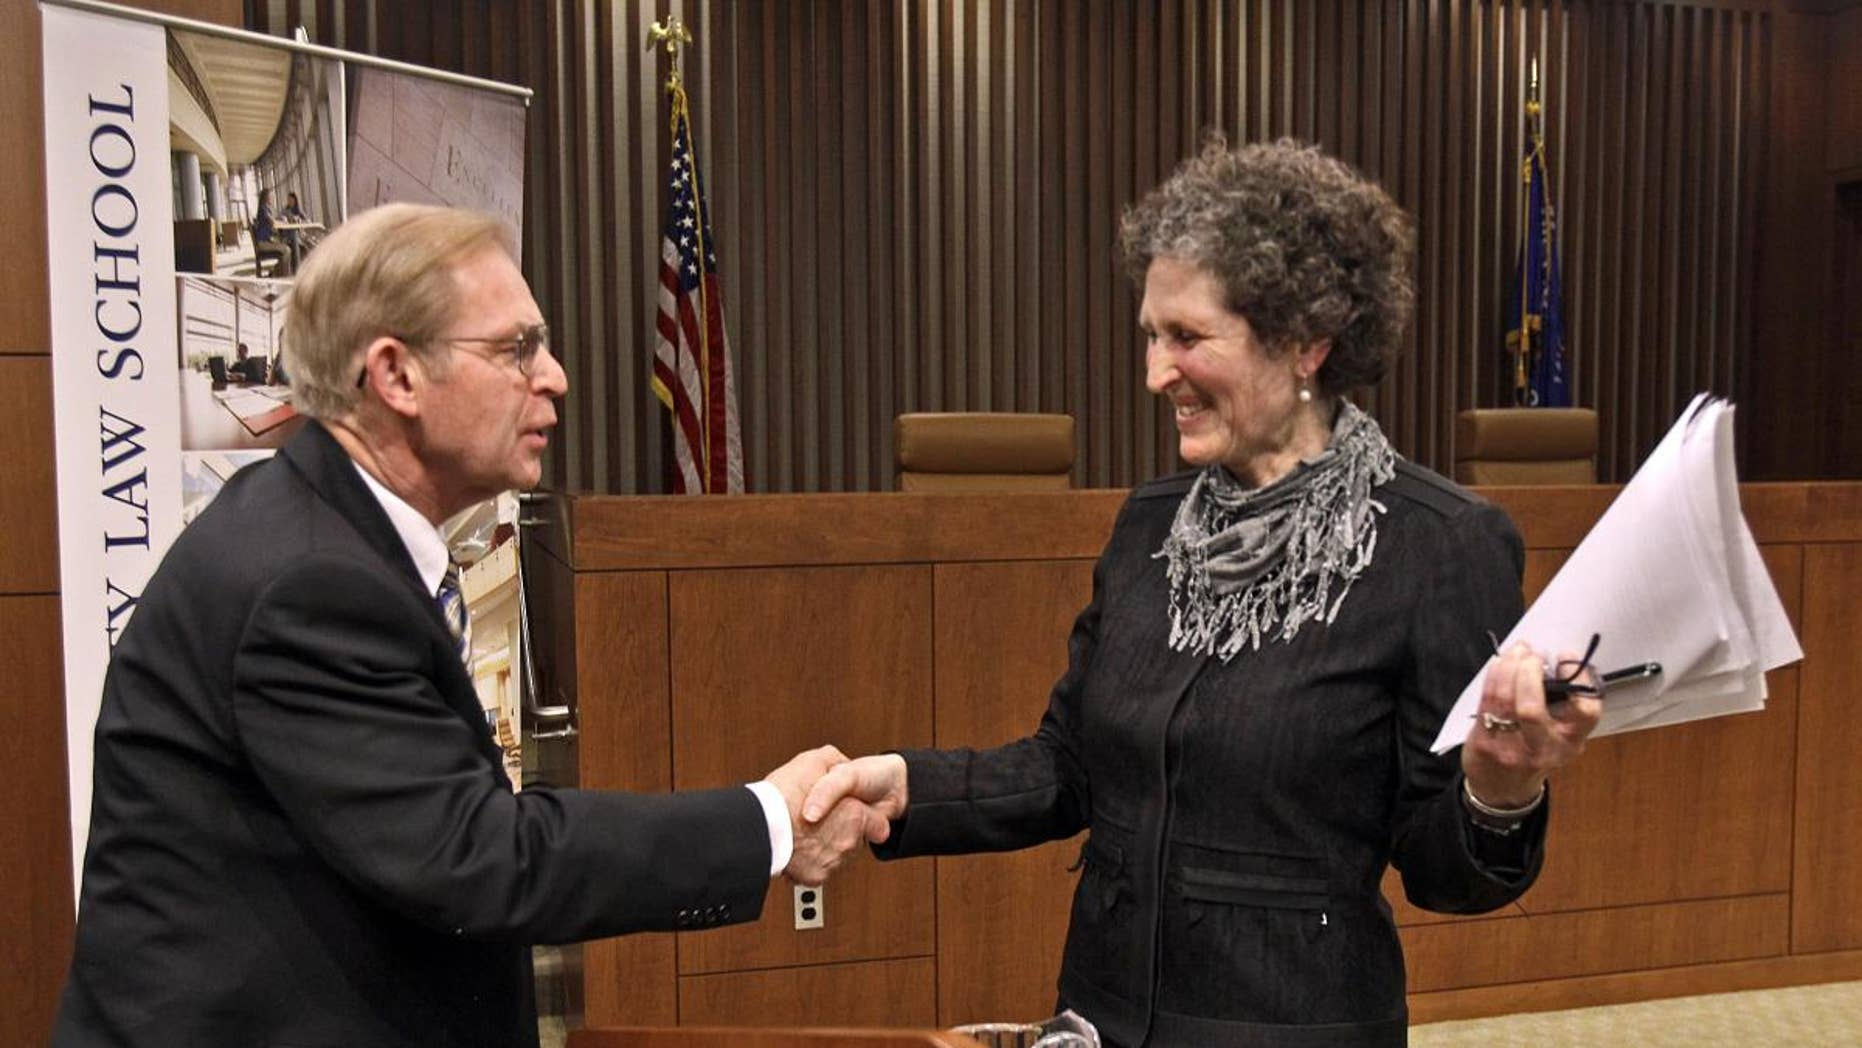 Justice David Prosser shakes hands with Assistant Attorney General JoAnne Kloppenburg after their debate for the Wisconsin Supreme Court at the Marquette University Law School in Milwaukee. (AP Photo/Milwaukee Journal-Sentinel, Benny Sieu)